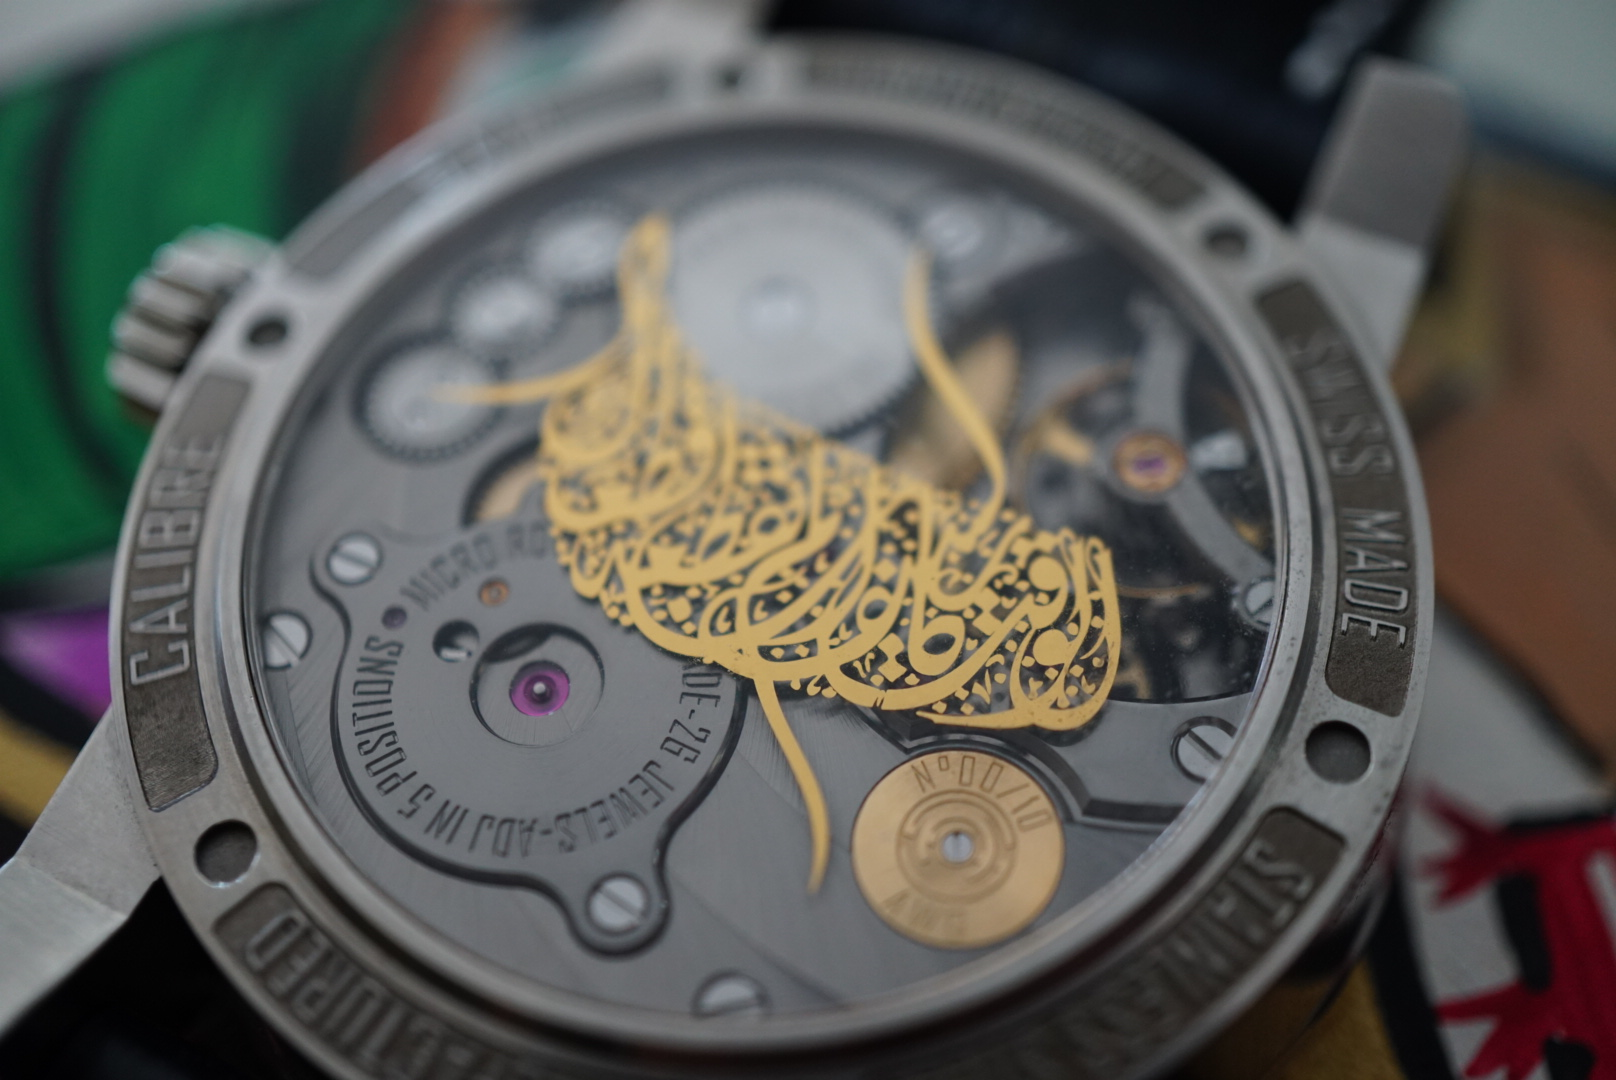 INTRODUCING THE ARMINSTROM GRAVITY ARAB WATCH CLUB EDITION 5